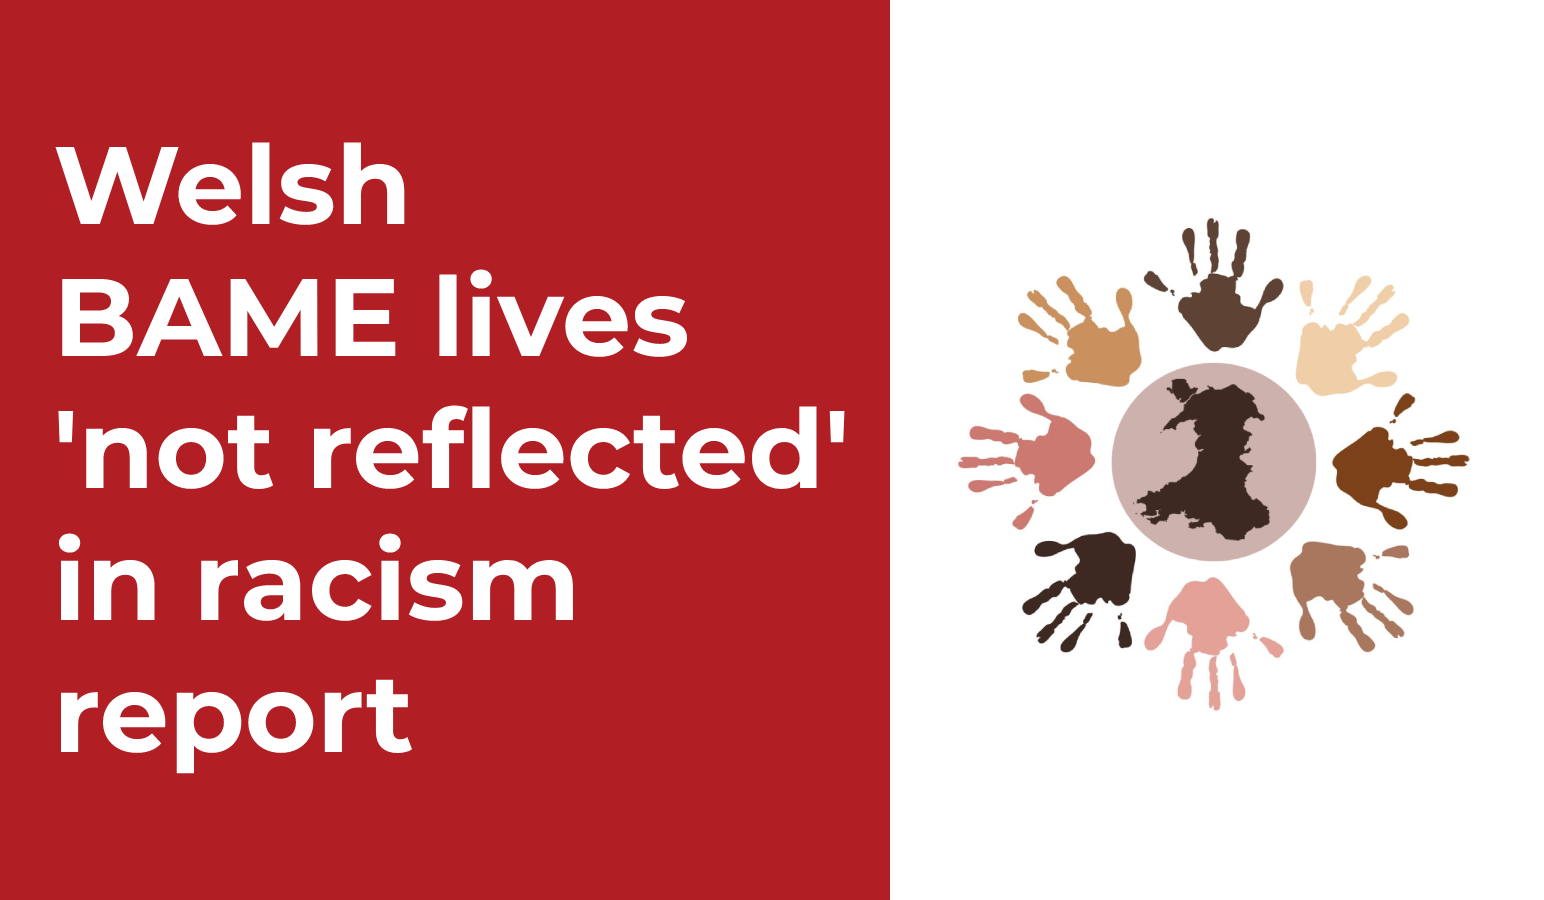 welsh bame lives not reflected in racism report race council cymru